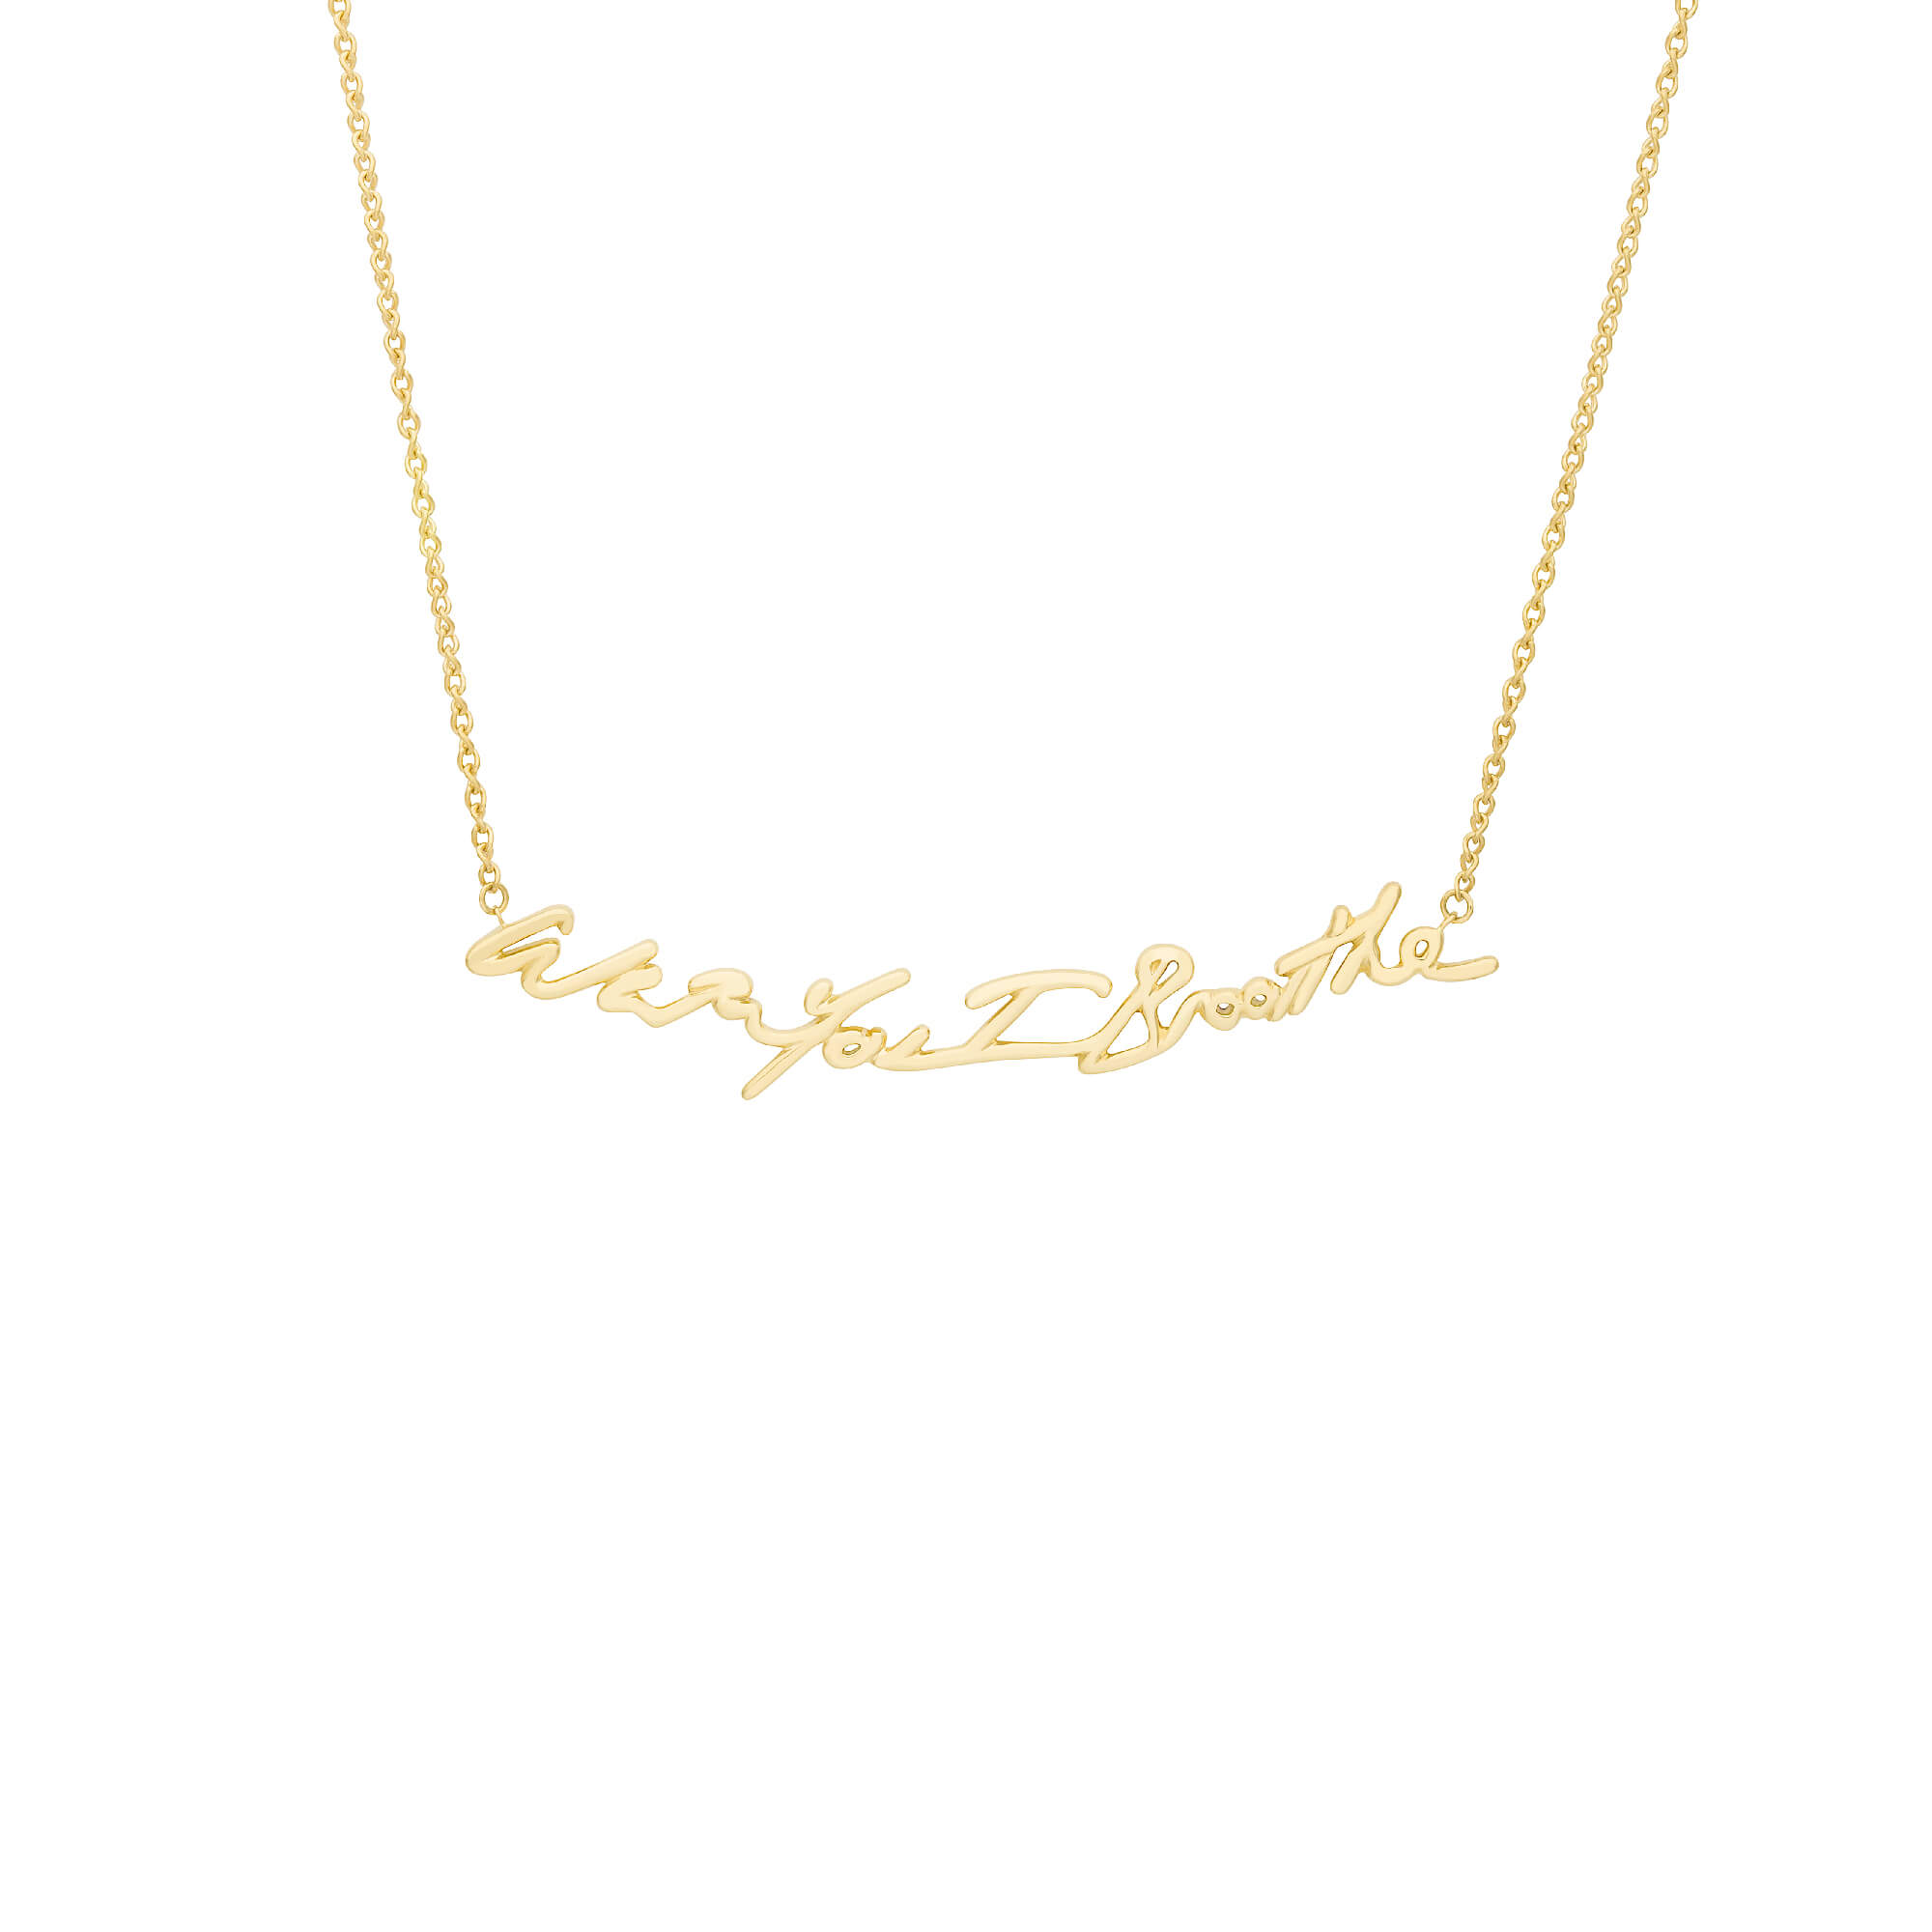 Neon Yellow Gold With You I Breathe Pendant | I Promise To Love You